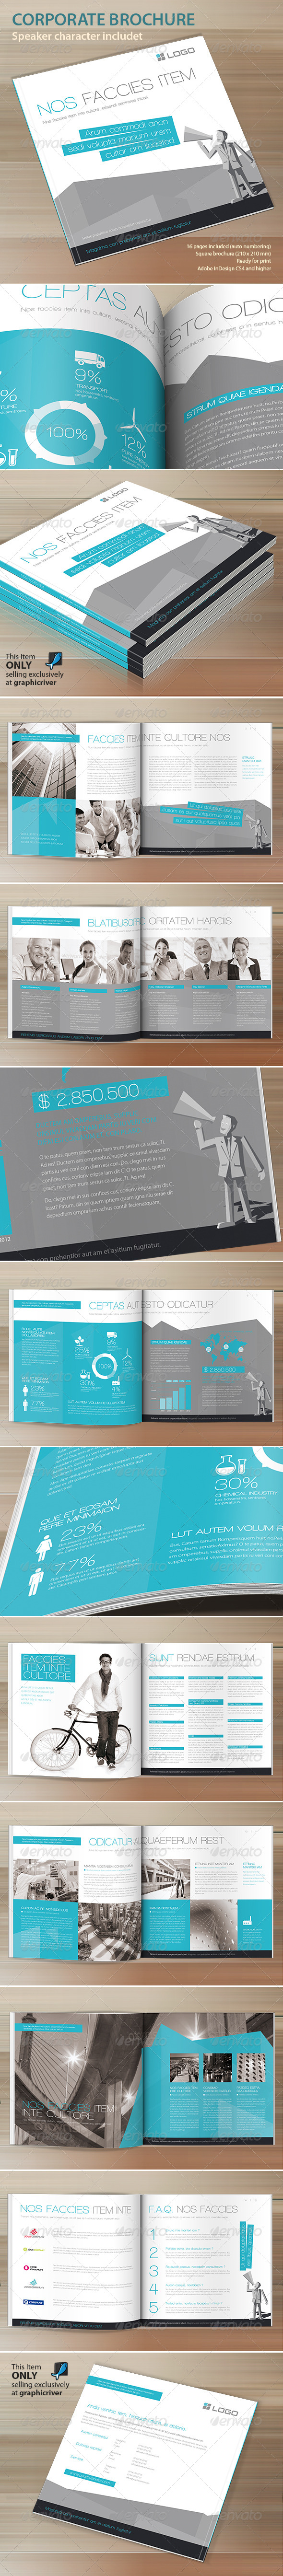 GraphicRiver Corporate Brochure 4804126